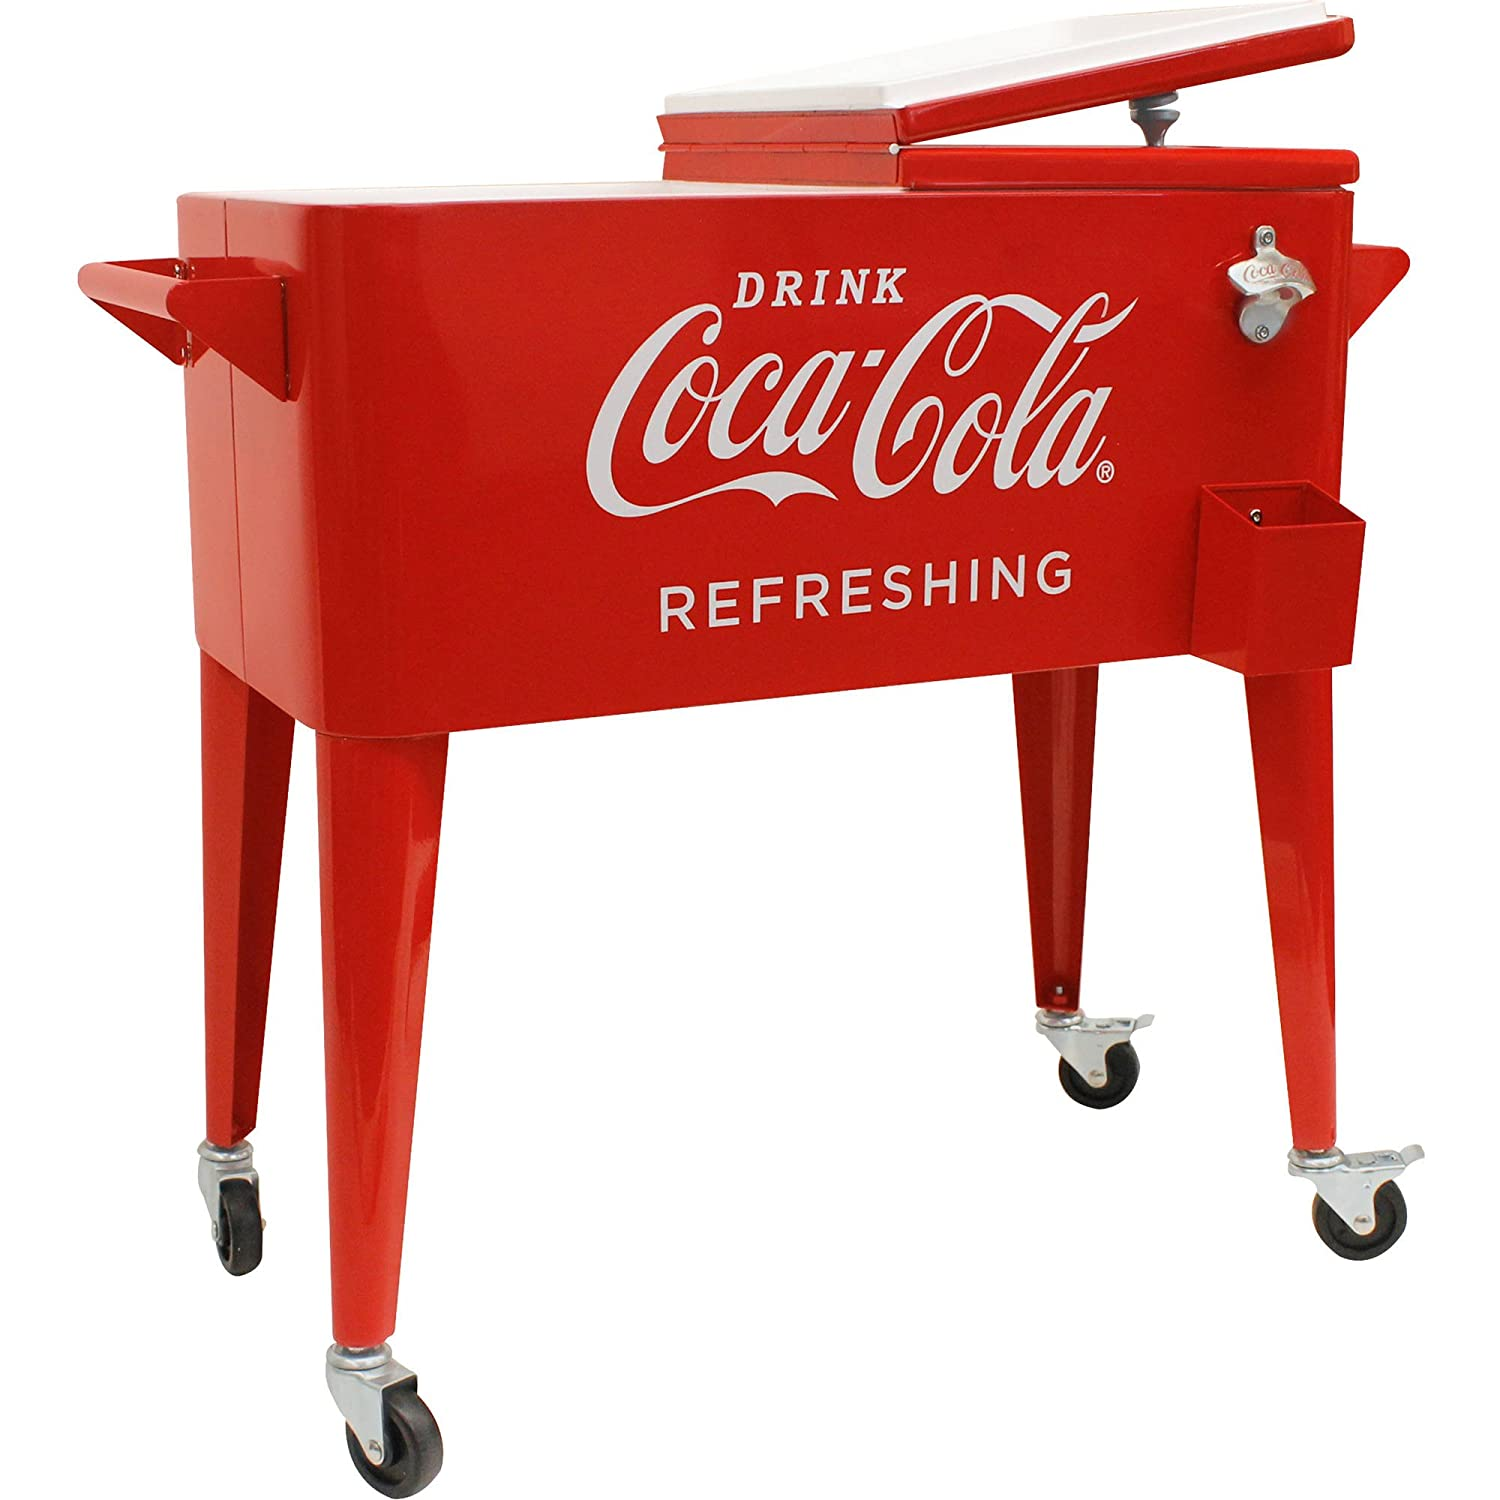 80-quart Retro Coca-Cola cooler34; refreshing34;: Amazon.es ...